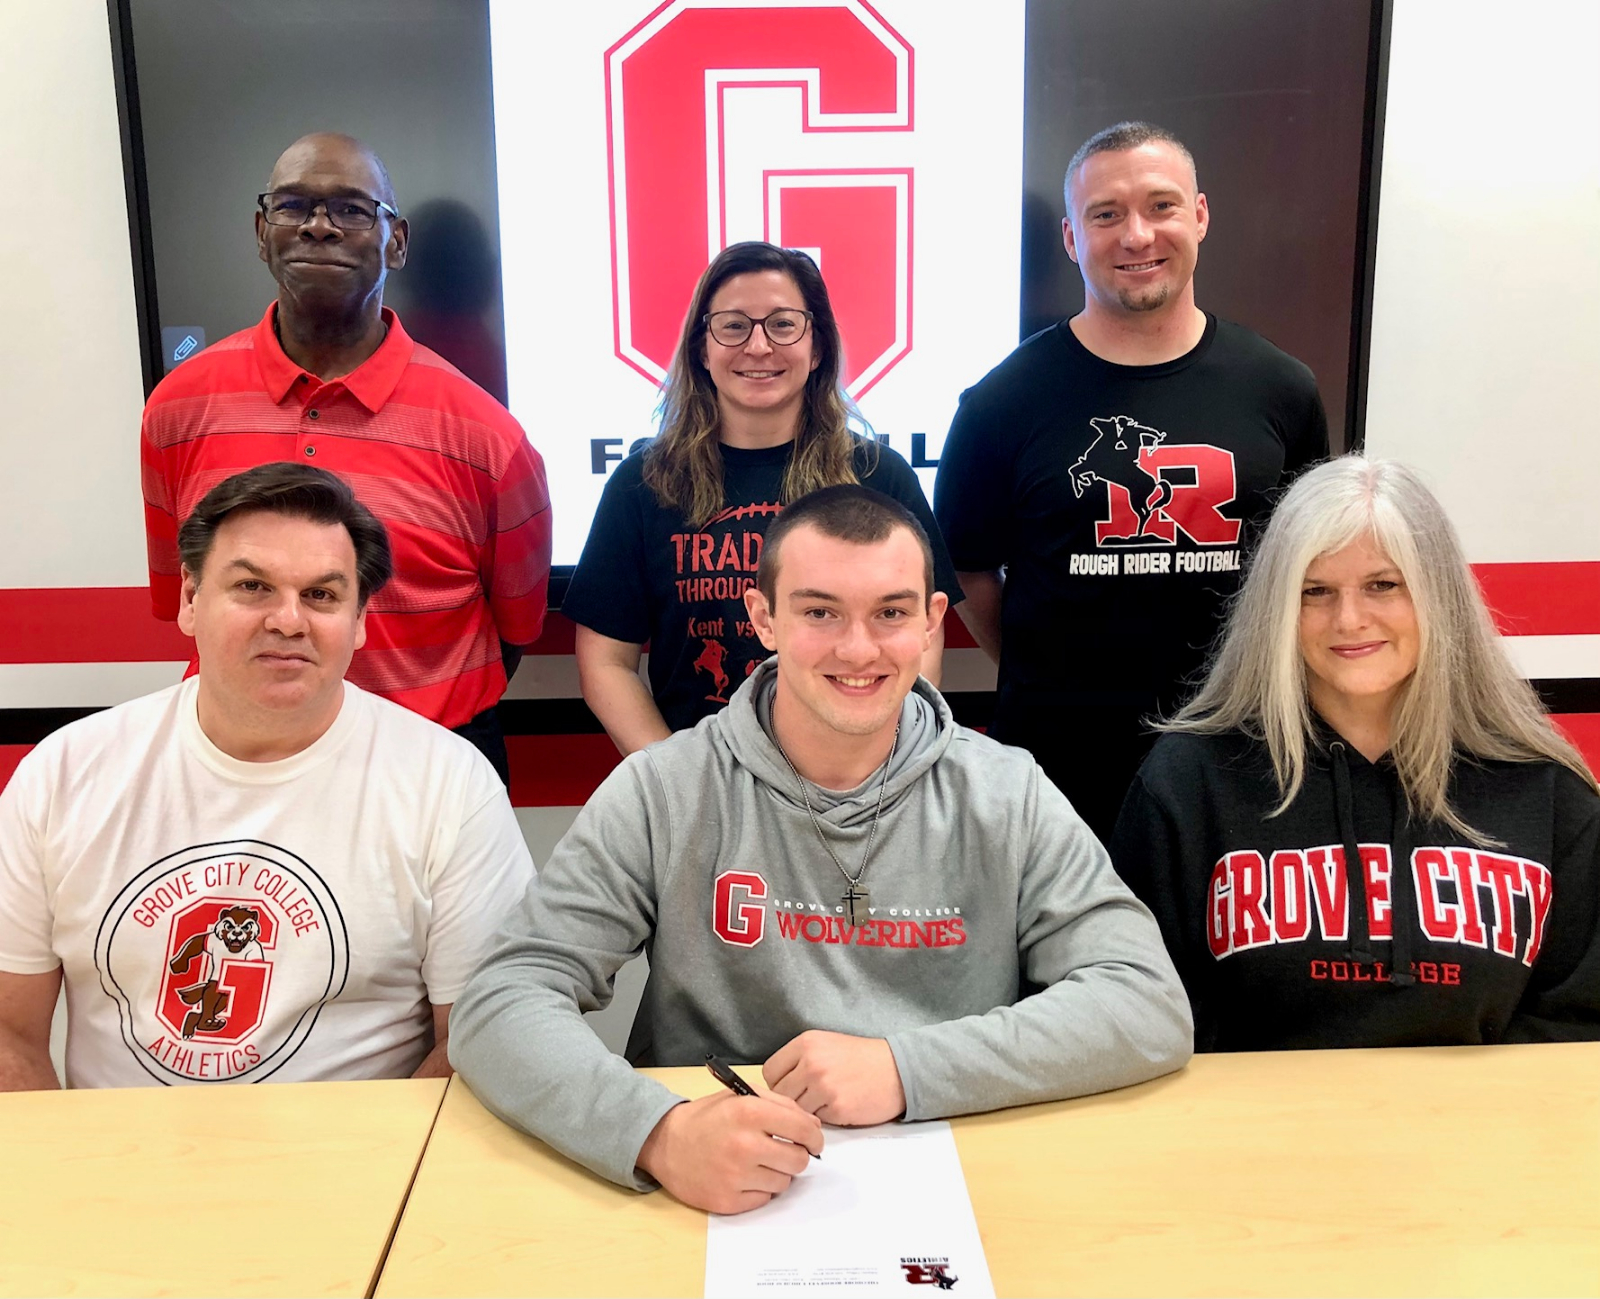 John Schwaben Athletic Signing Pictures – Grove City College, 4-8-21